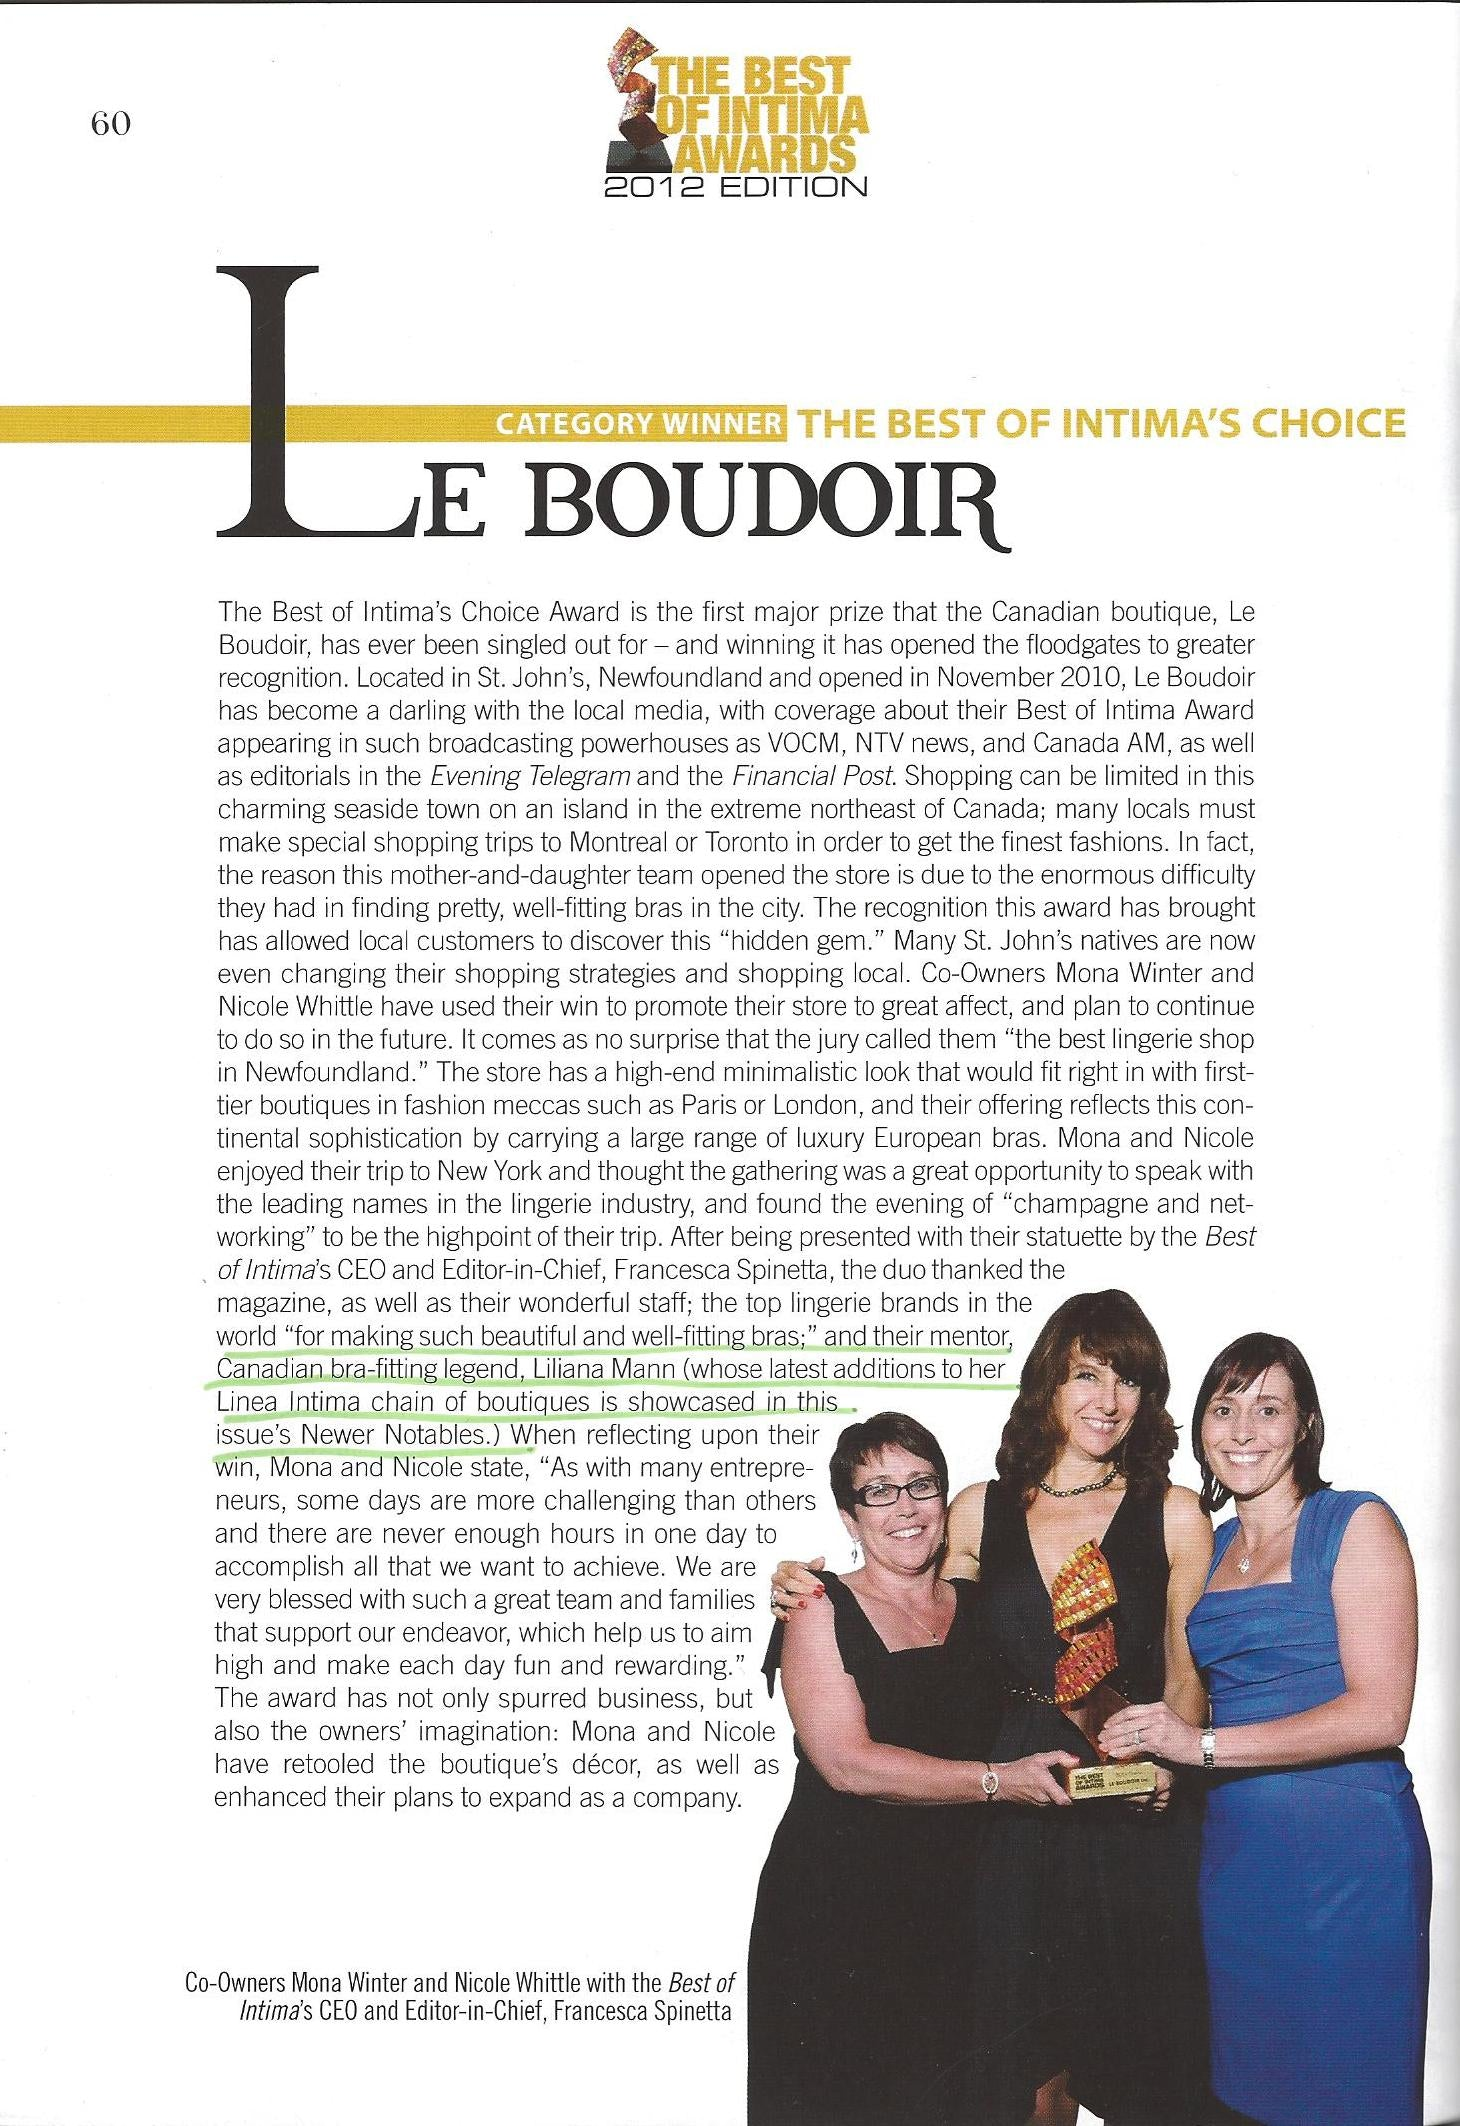 The Best of Intima Awards 2012 -  Nova Scotia's winning owners of Le Boudoir, credit their success to their mentor, 'bra-fitting legend' Liliana Mann